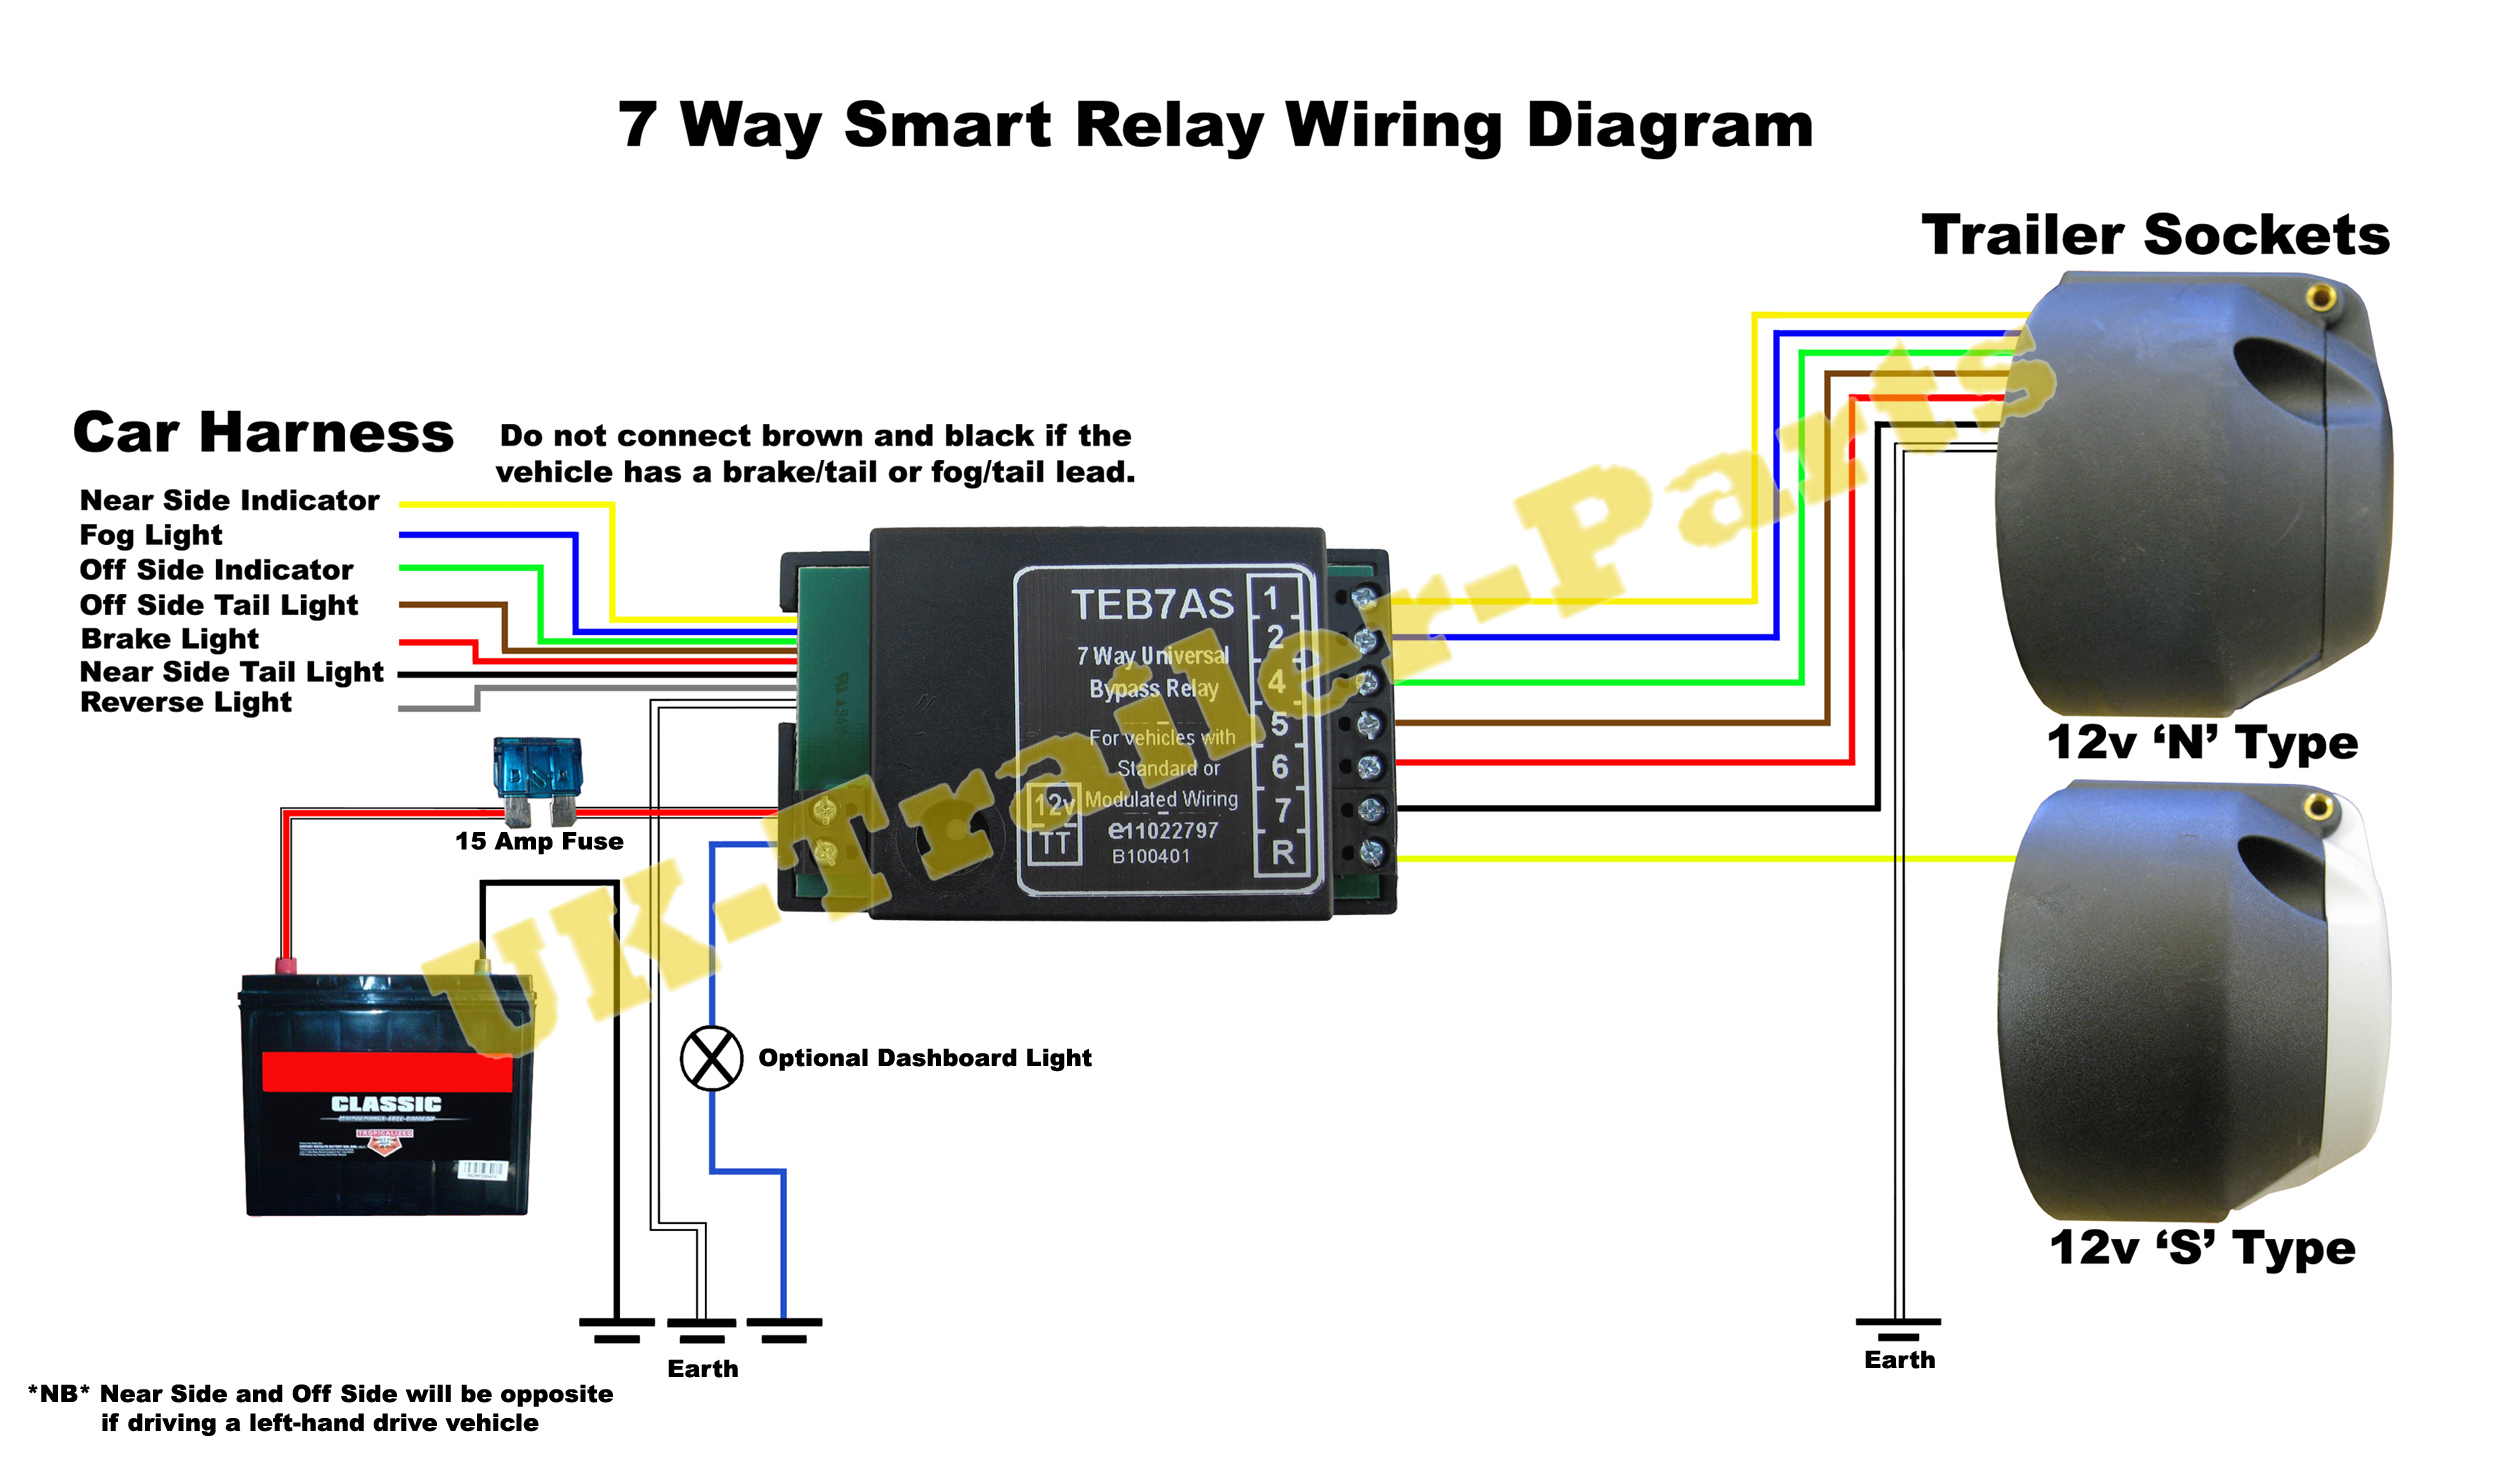 smart relay wiring diagram2 7 way universal bypass relay wiring diagram uk trailer parts ford s max towbar wiring diagram at edmiracle.co